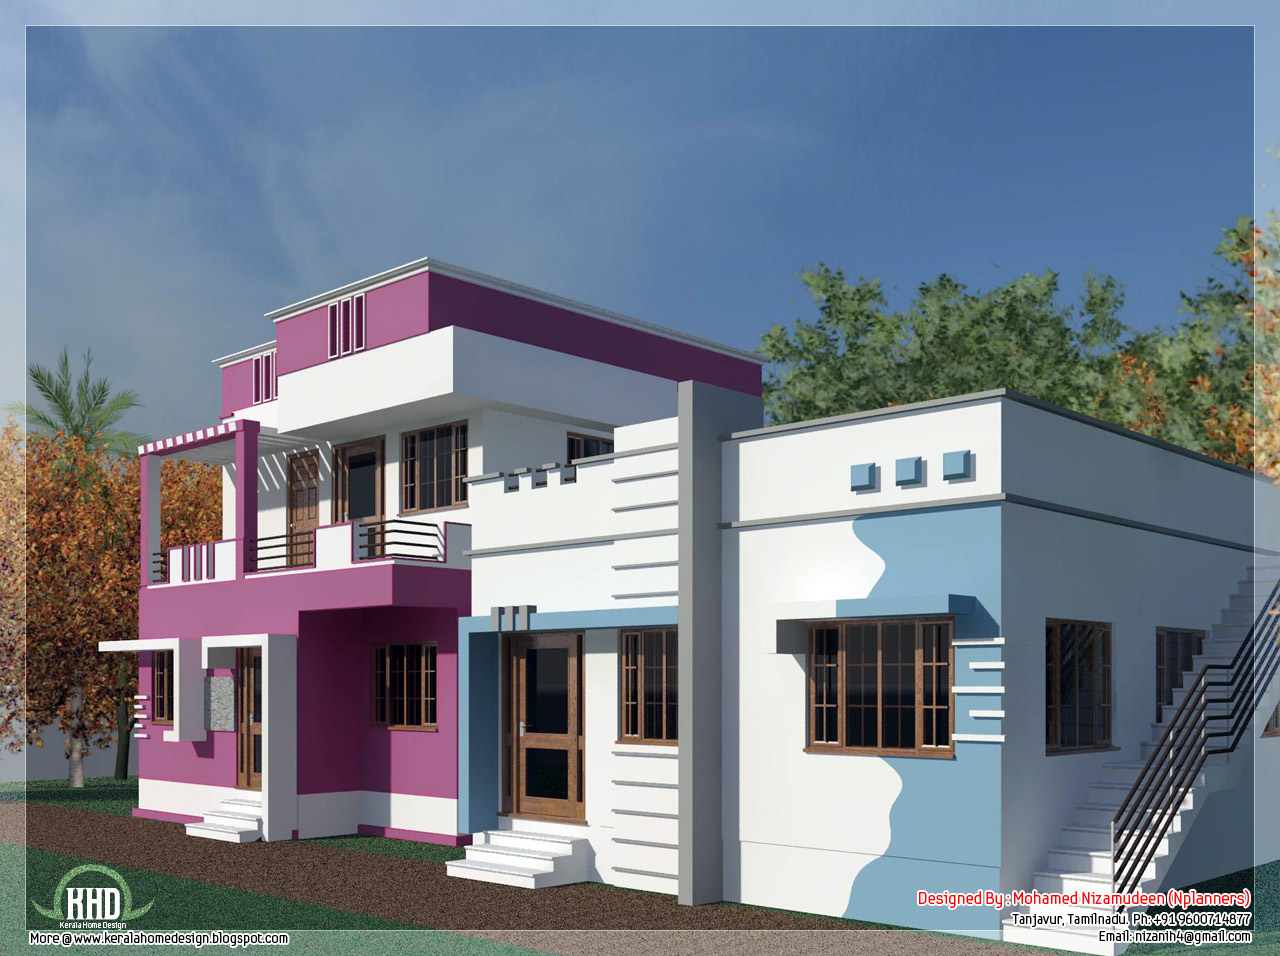 design specialties south indian model minimalist box house design